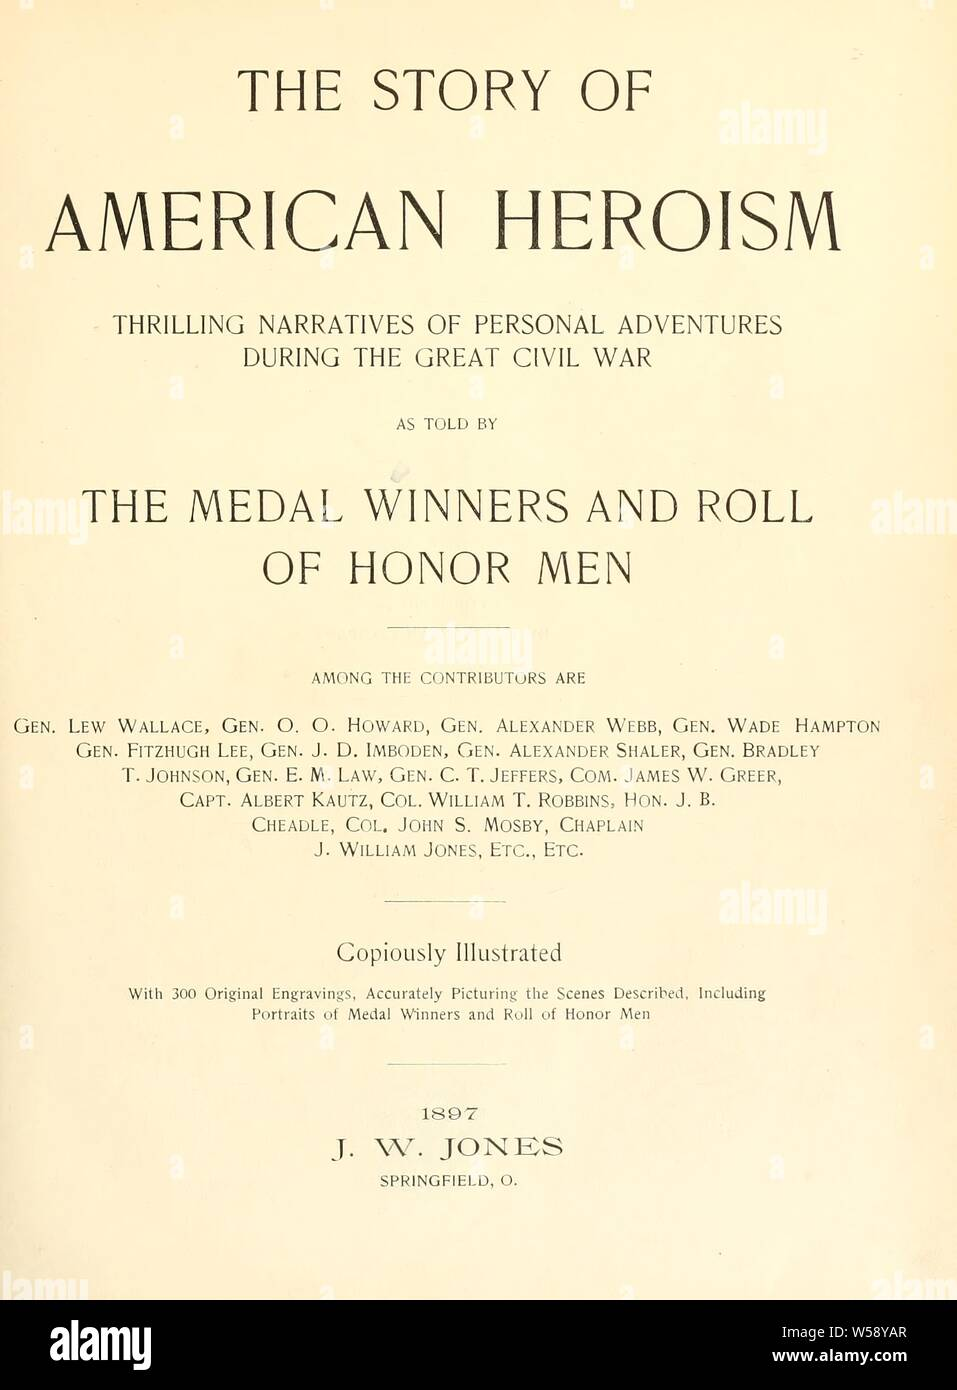 The story of American heroism; thrilling narratives of personal adventures during the great Civil war, as told by the medal winners and roll of honor men : Wallace, Lew, 1827-1905 Stock Photo